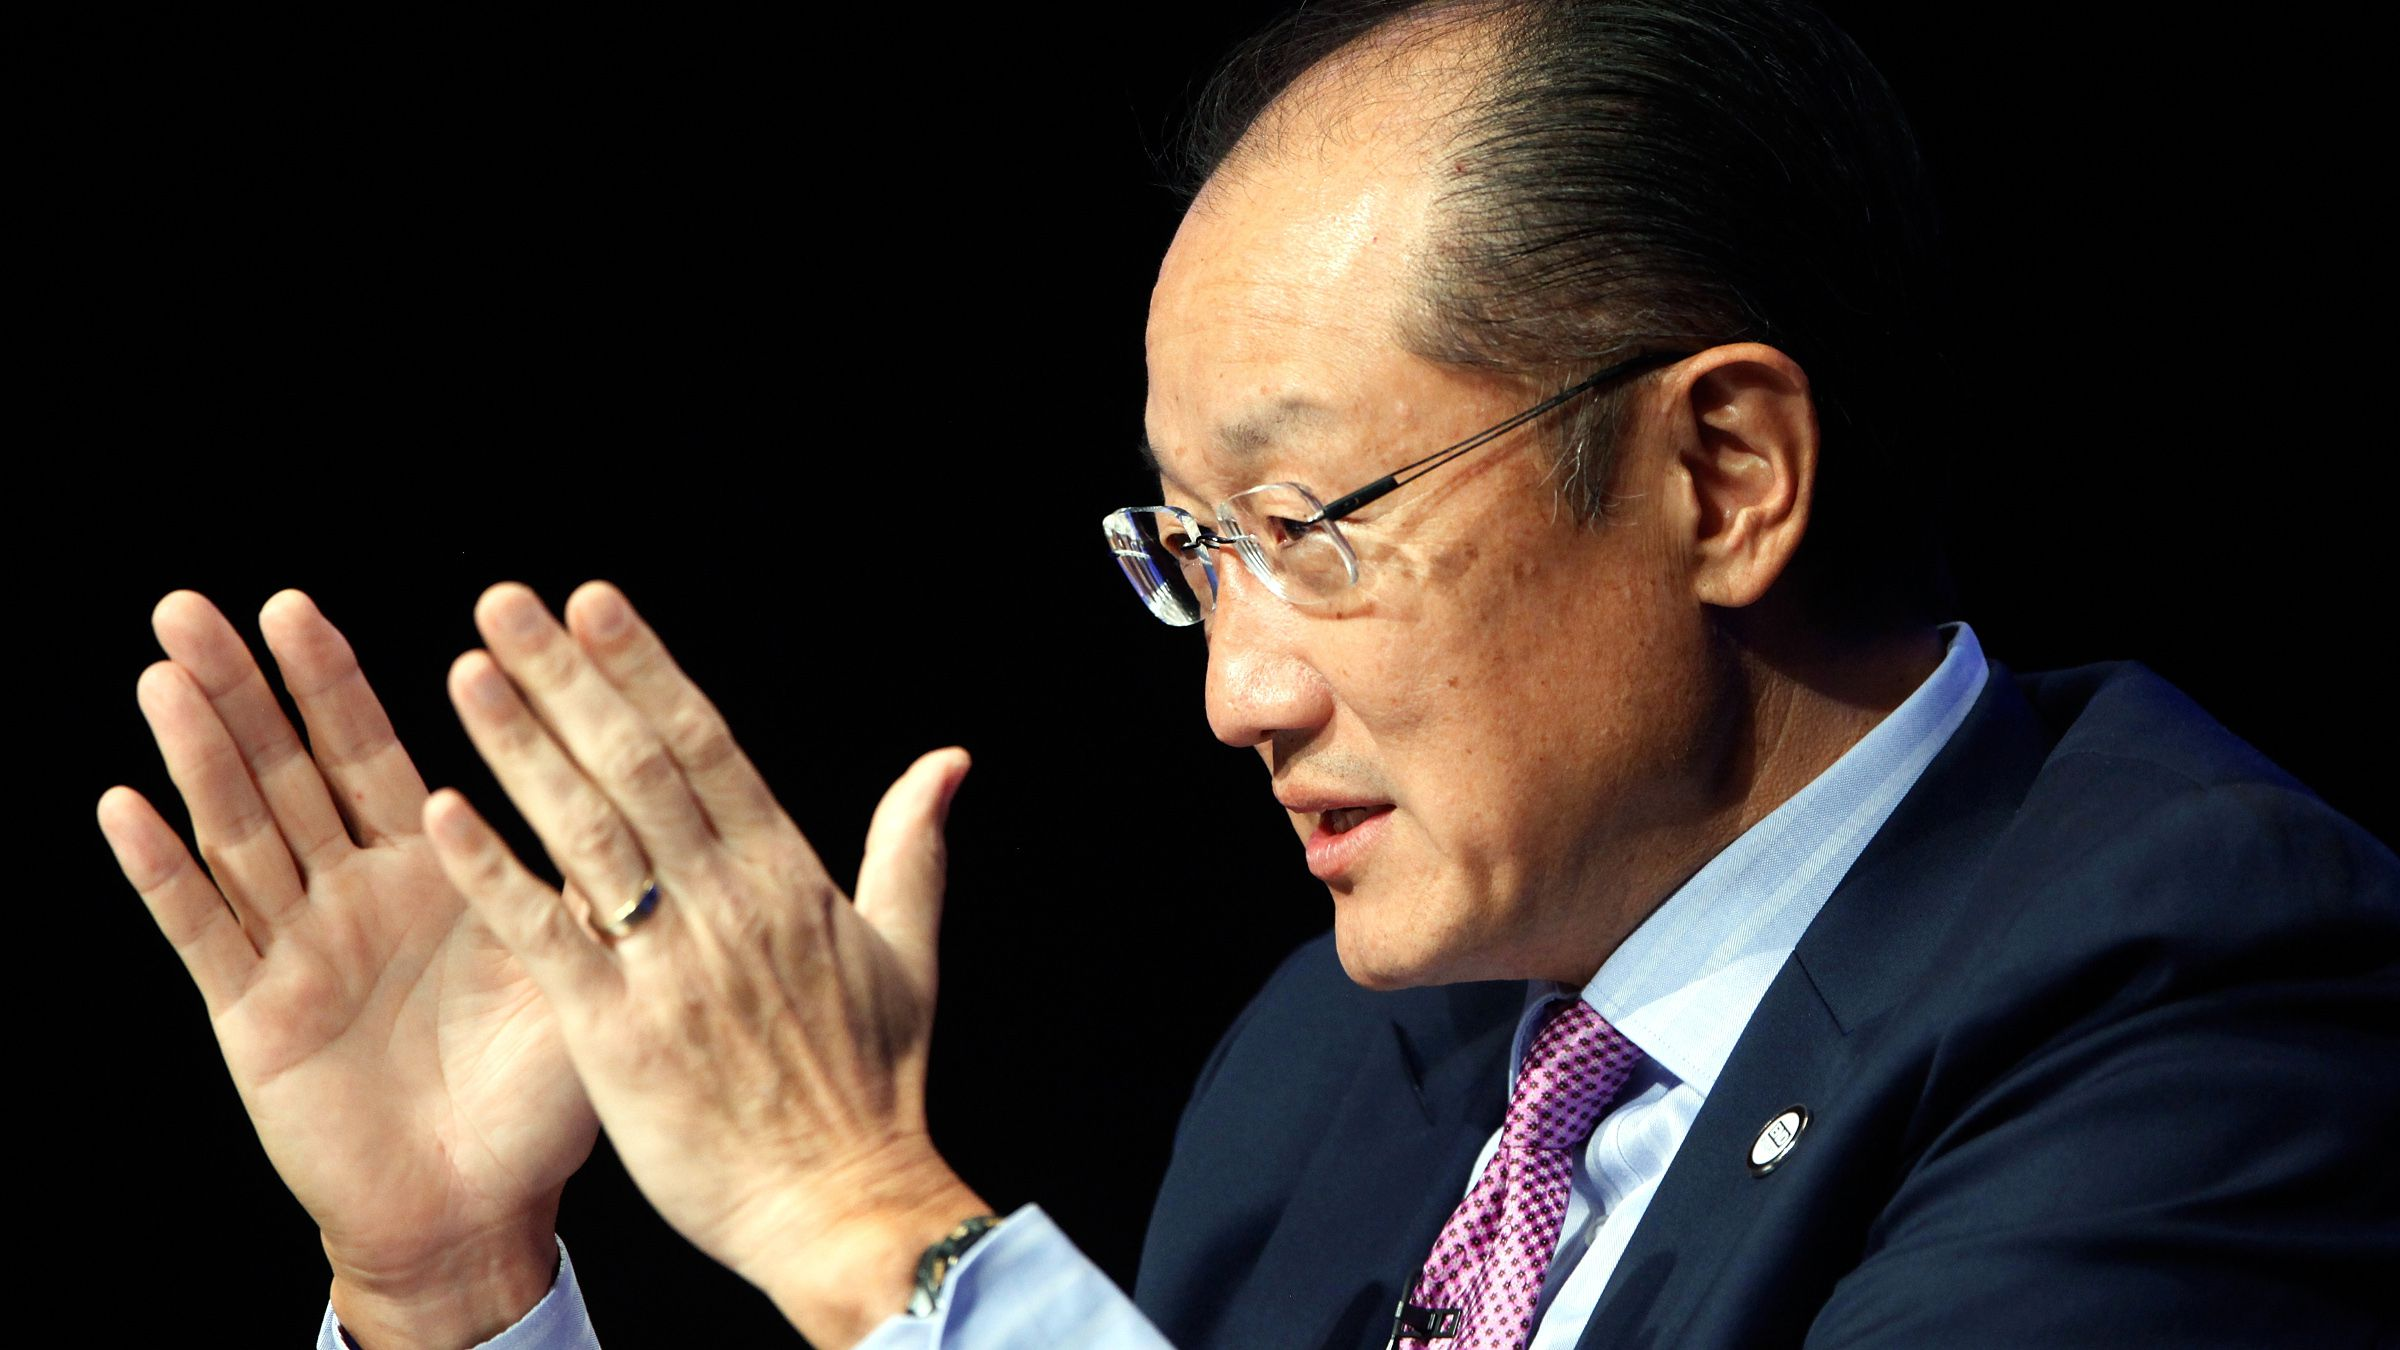 """World Bank President Jim Yong Kim speaks on a panel titled """"Building Shared Prosperity in an Unequal World"""" during the IMF-World Bank annual meetings in Washington October 8, 2014."""